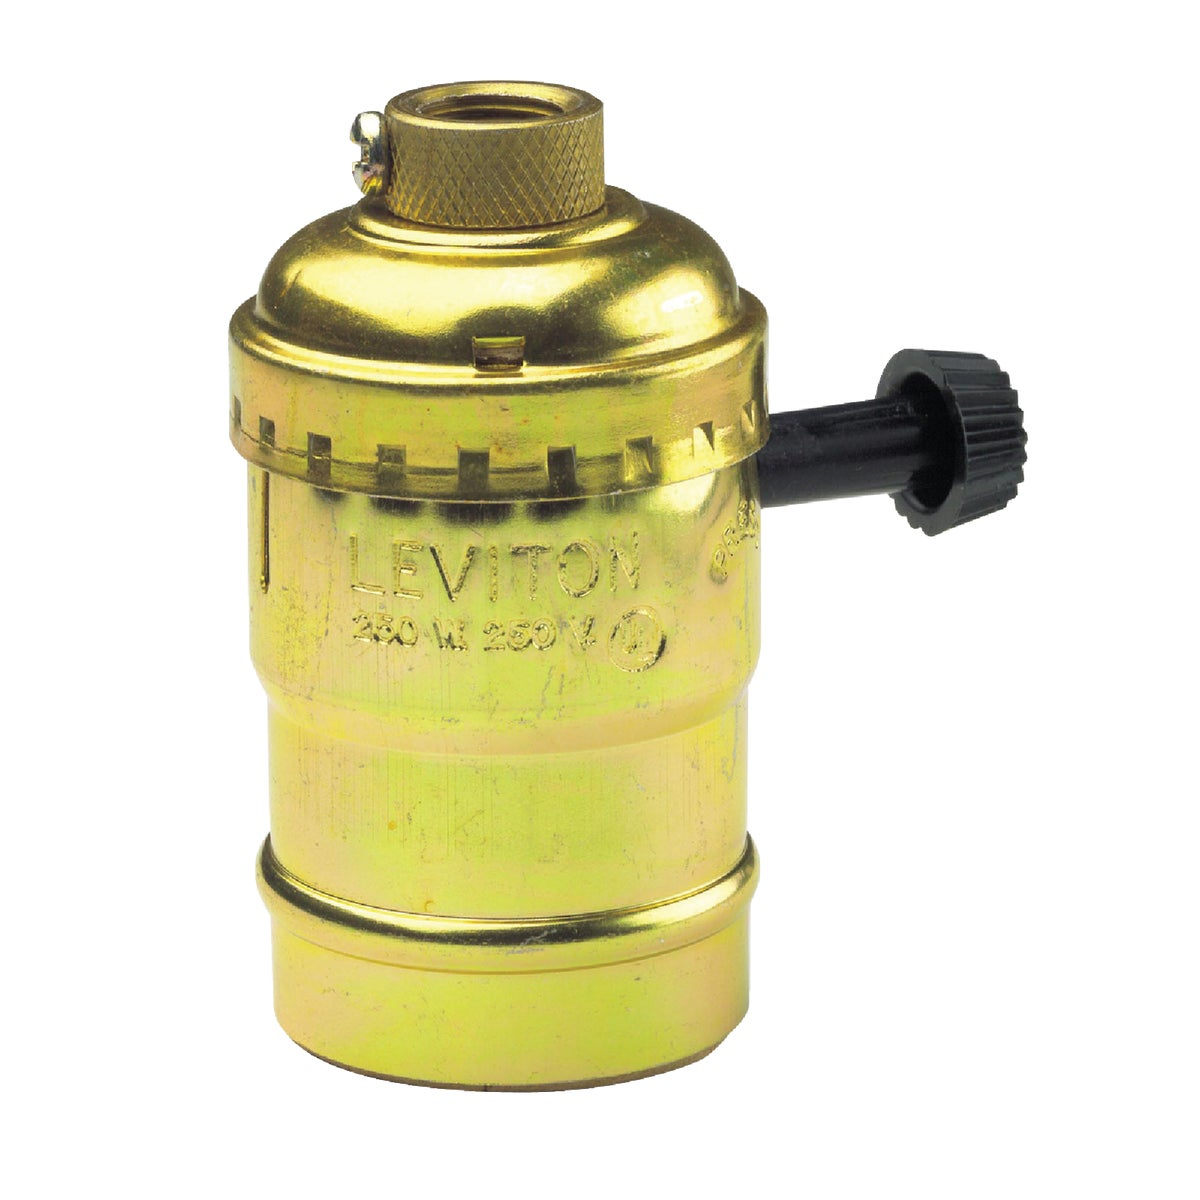 2-CIRCUIT SOCKET - 7070PG by Leviton Mfg Co